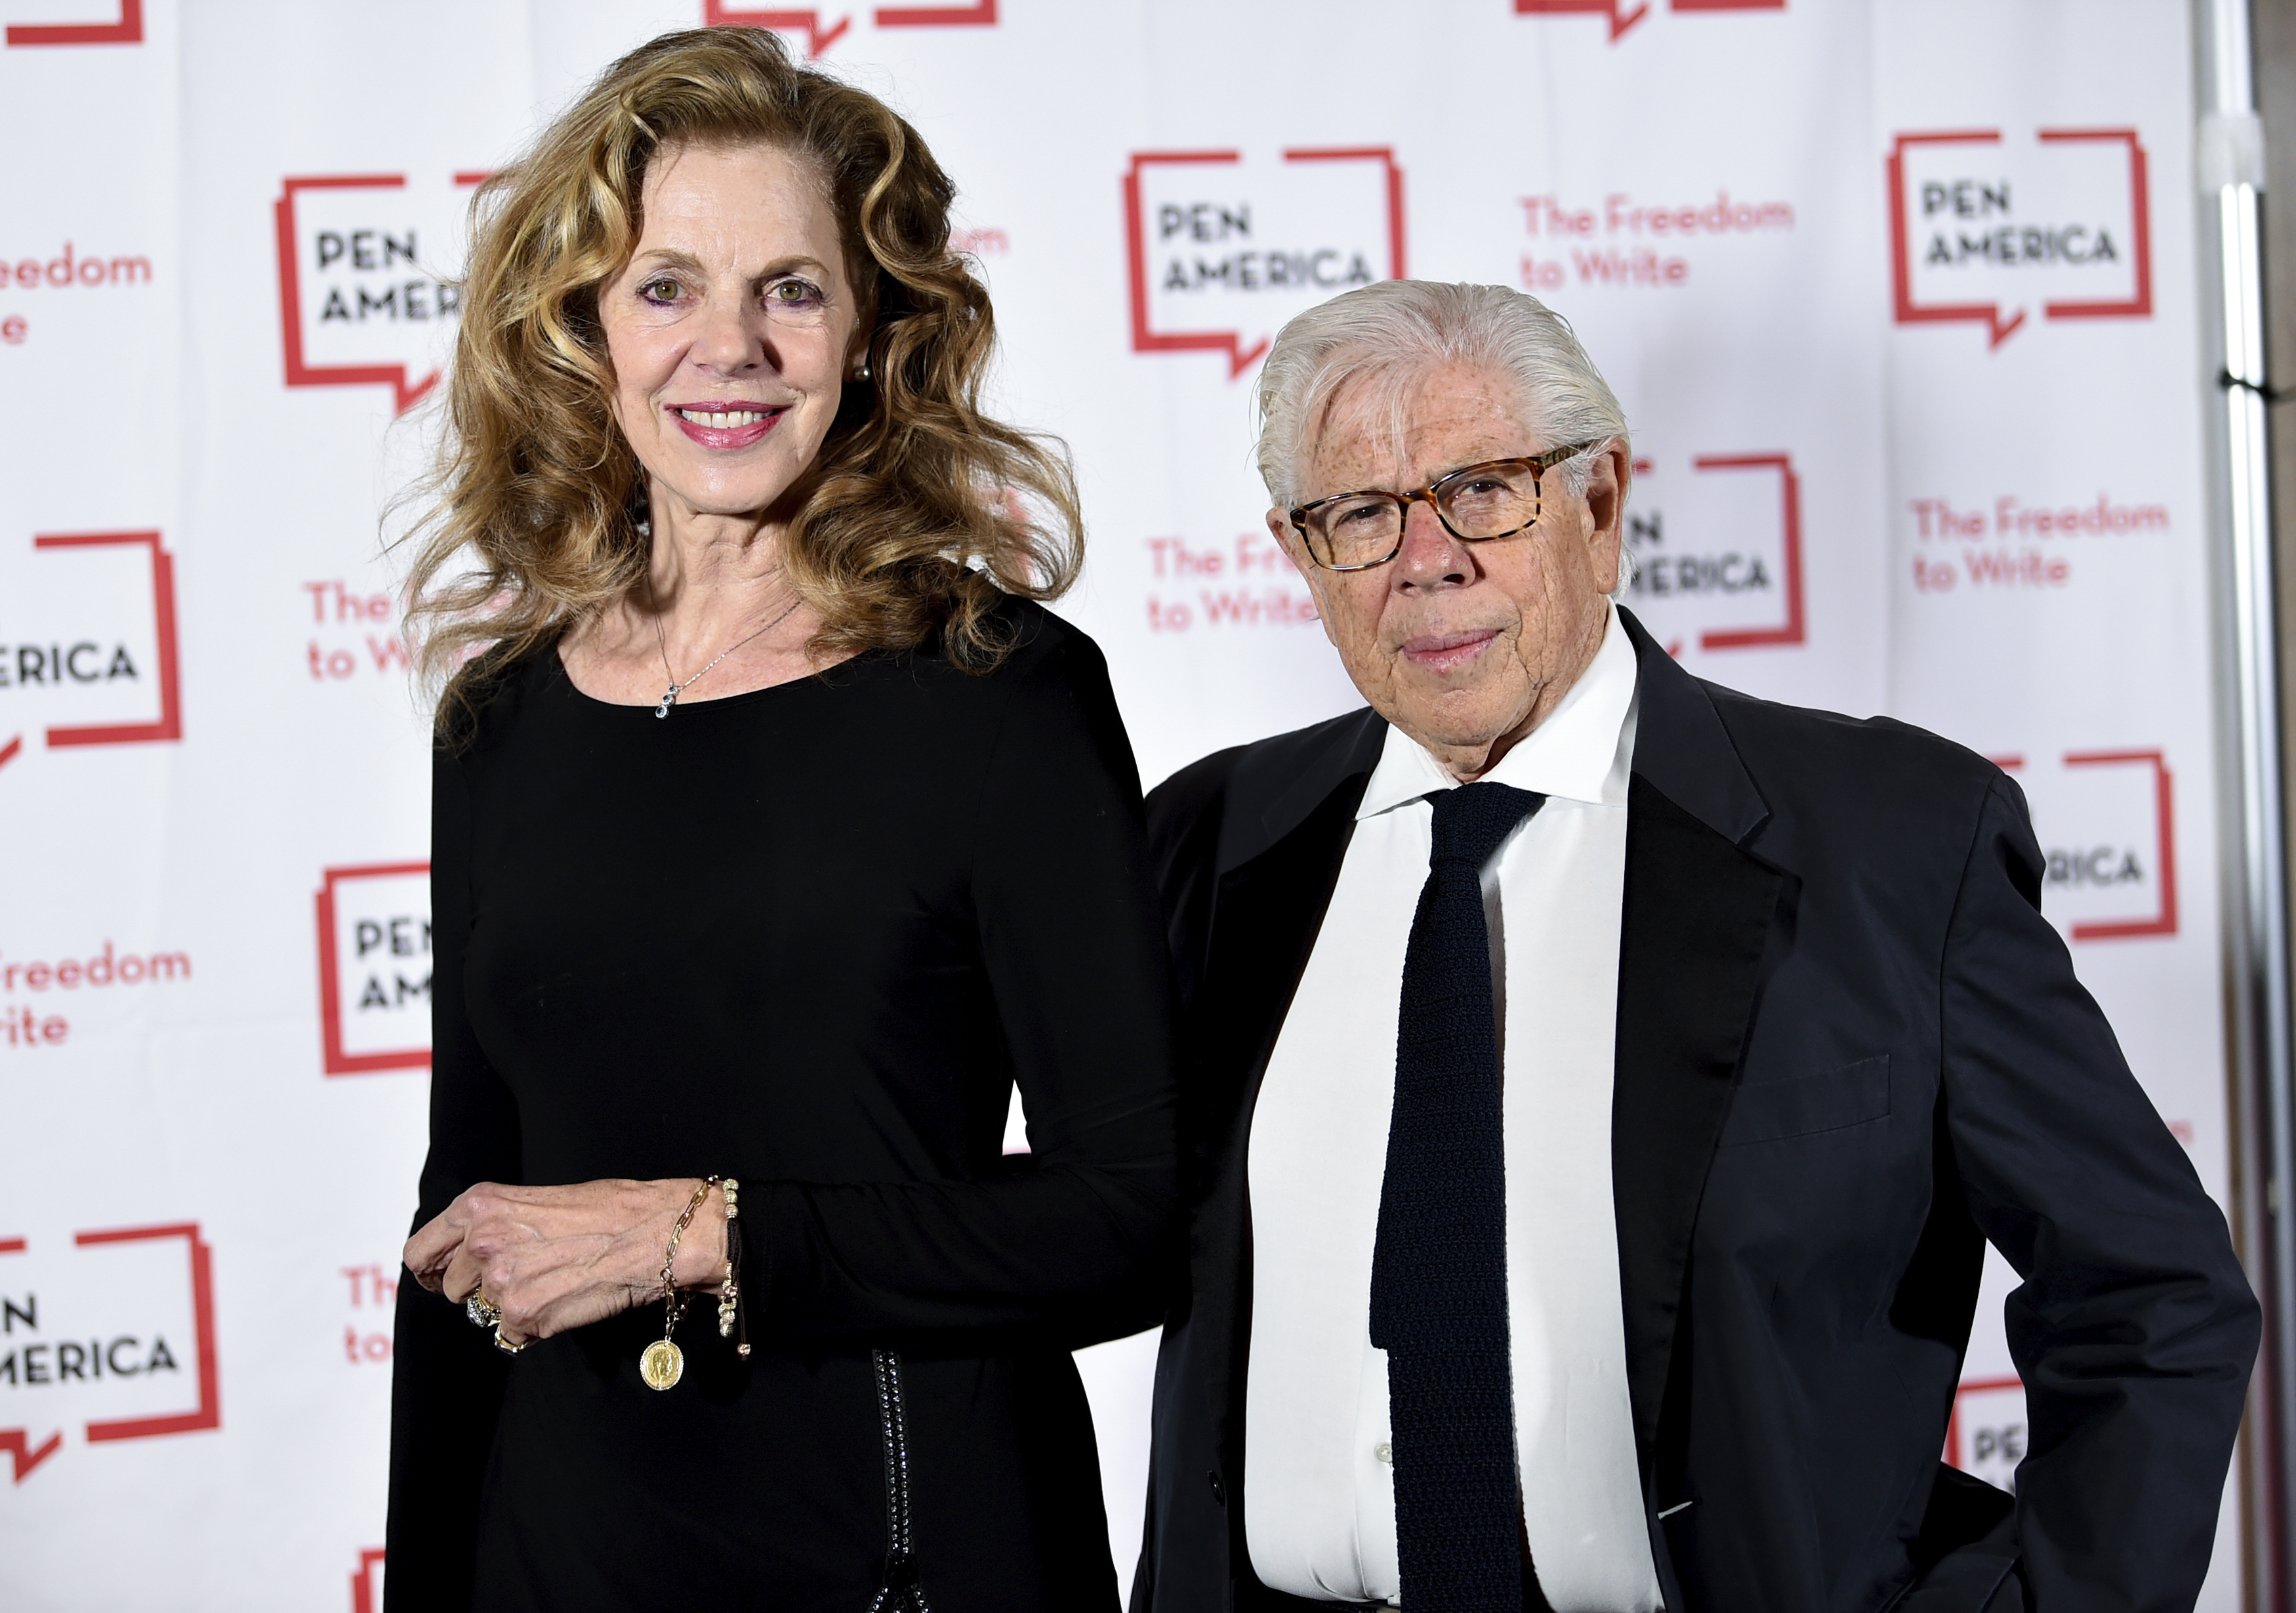 Journalist Carl Bernstein and wife Christine Kuehbeck attend the 2018 PEN Literary Gala at the American Museum of Natural History on Tuesday, May 22, 2018, in New York. (Photo by Evan Agostini/Invision/AP)